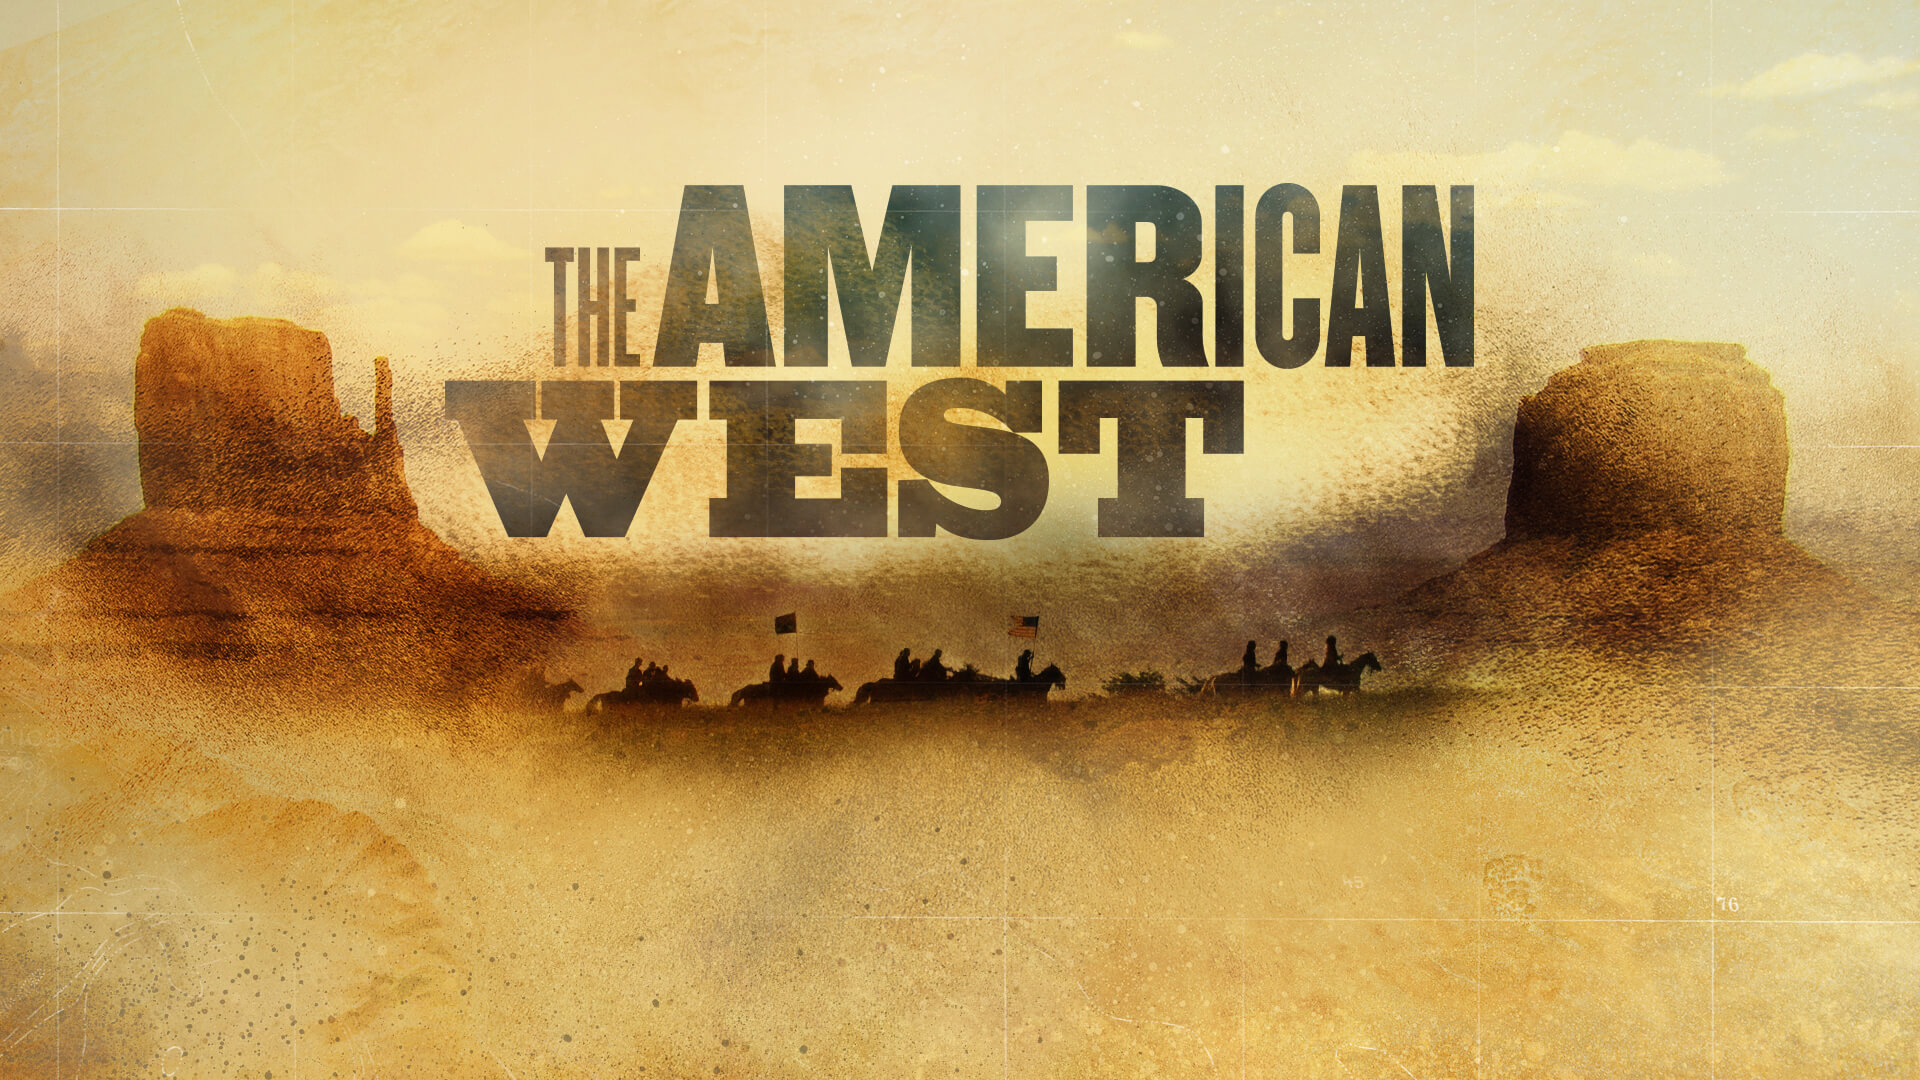 151030_AMC_THEWEST_TITLE_K_SML.jpg